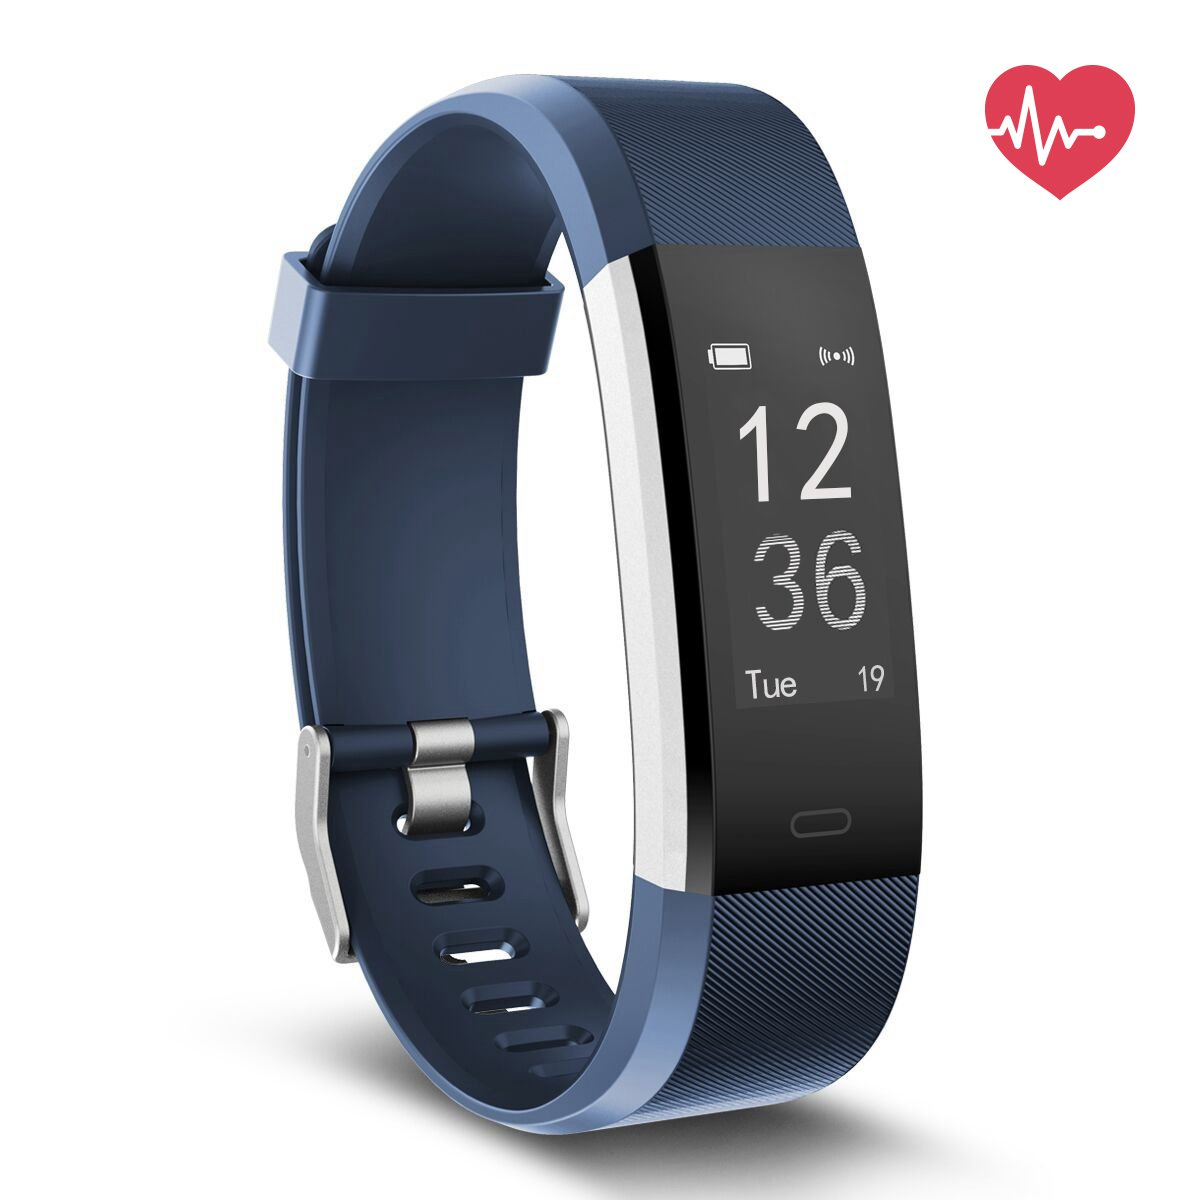 Watches Smart Watch Men Women Bracelet Heart Rate Monitor Wristband Fitness Bracelet For Android Ios Pk Xiomi Mi Band 2 Fitbits Smart As Effectively As A Fairy Does